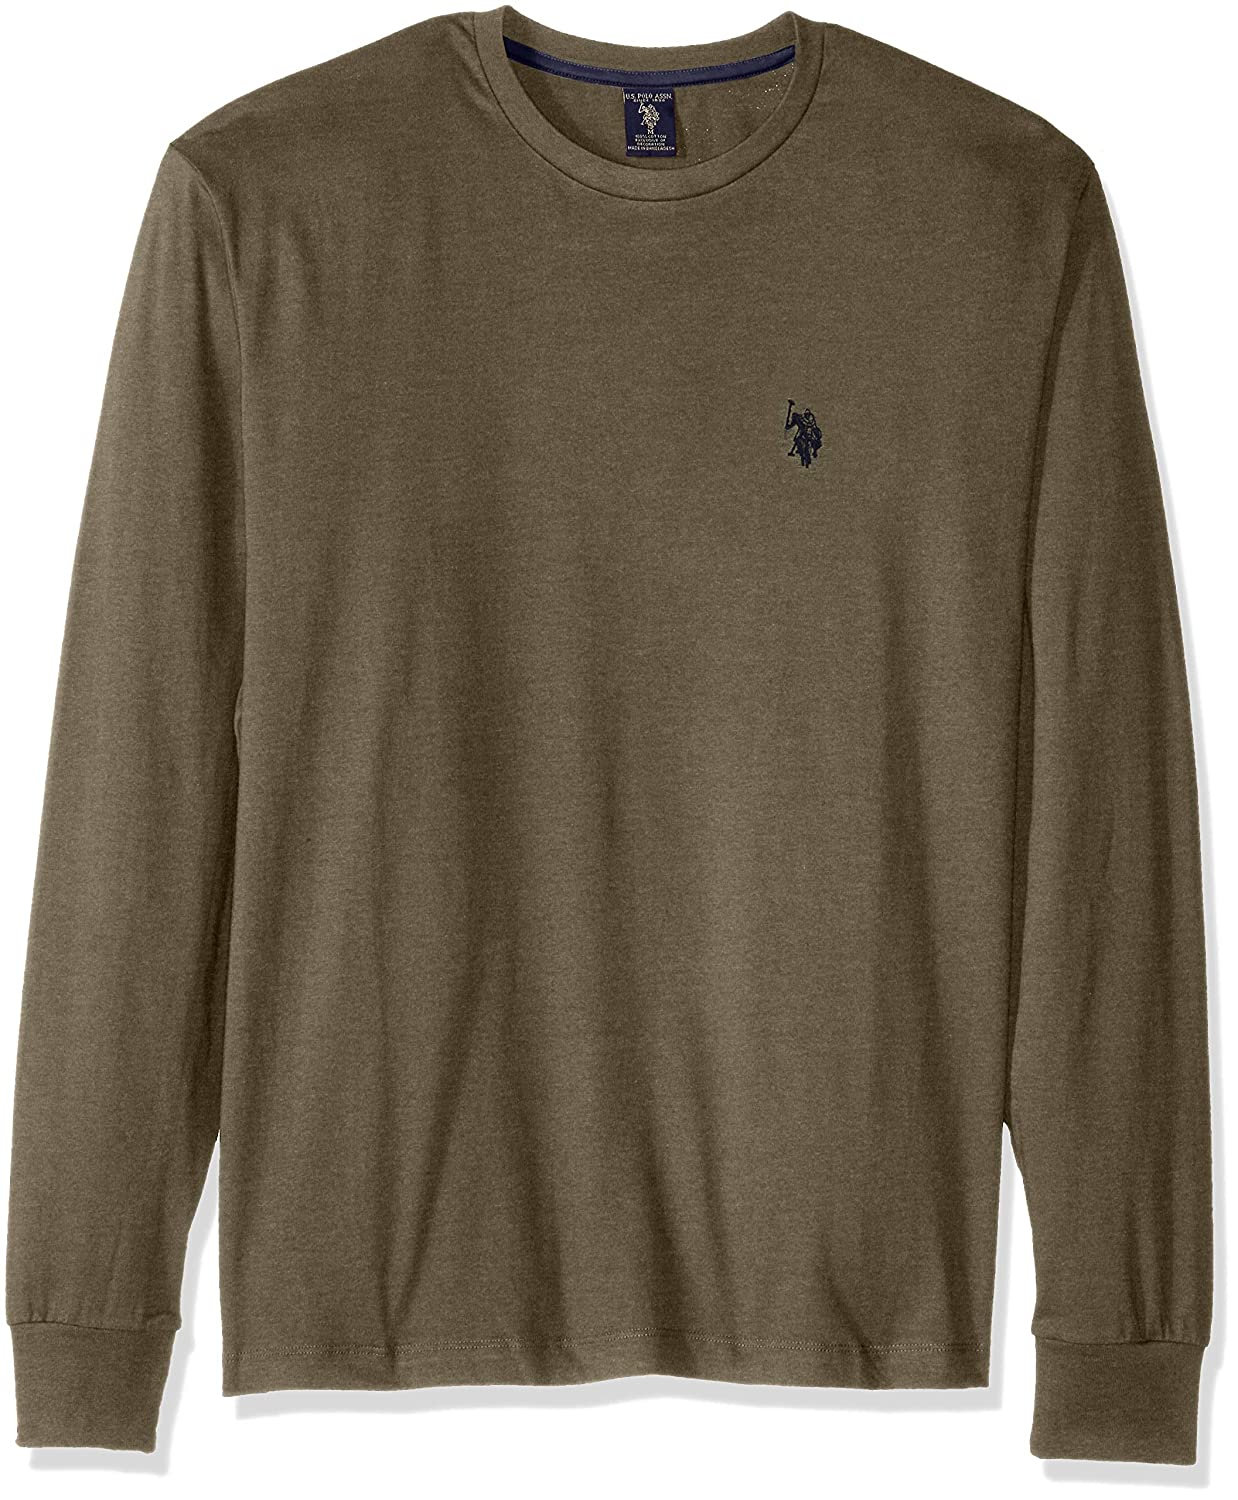 U.S. Polo Assn. Men's Long Sleeve Crew Neck T-Shirt U.S. Polo Assn Mens Traditoinal Collections